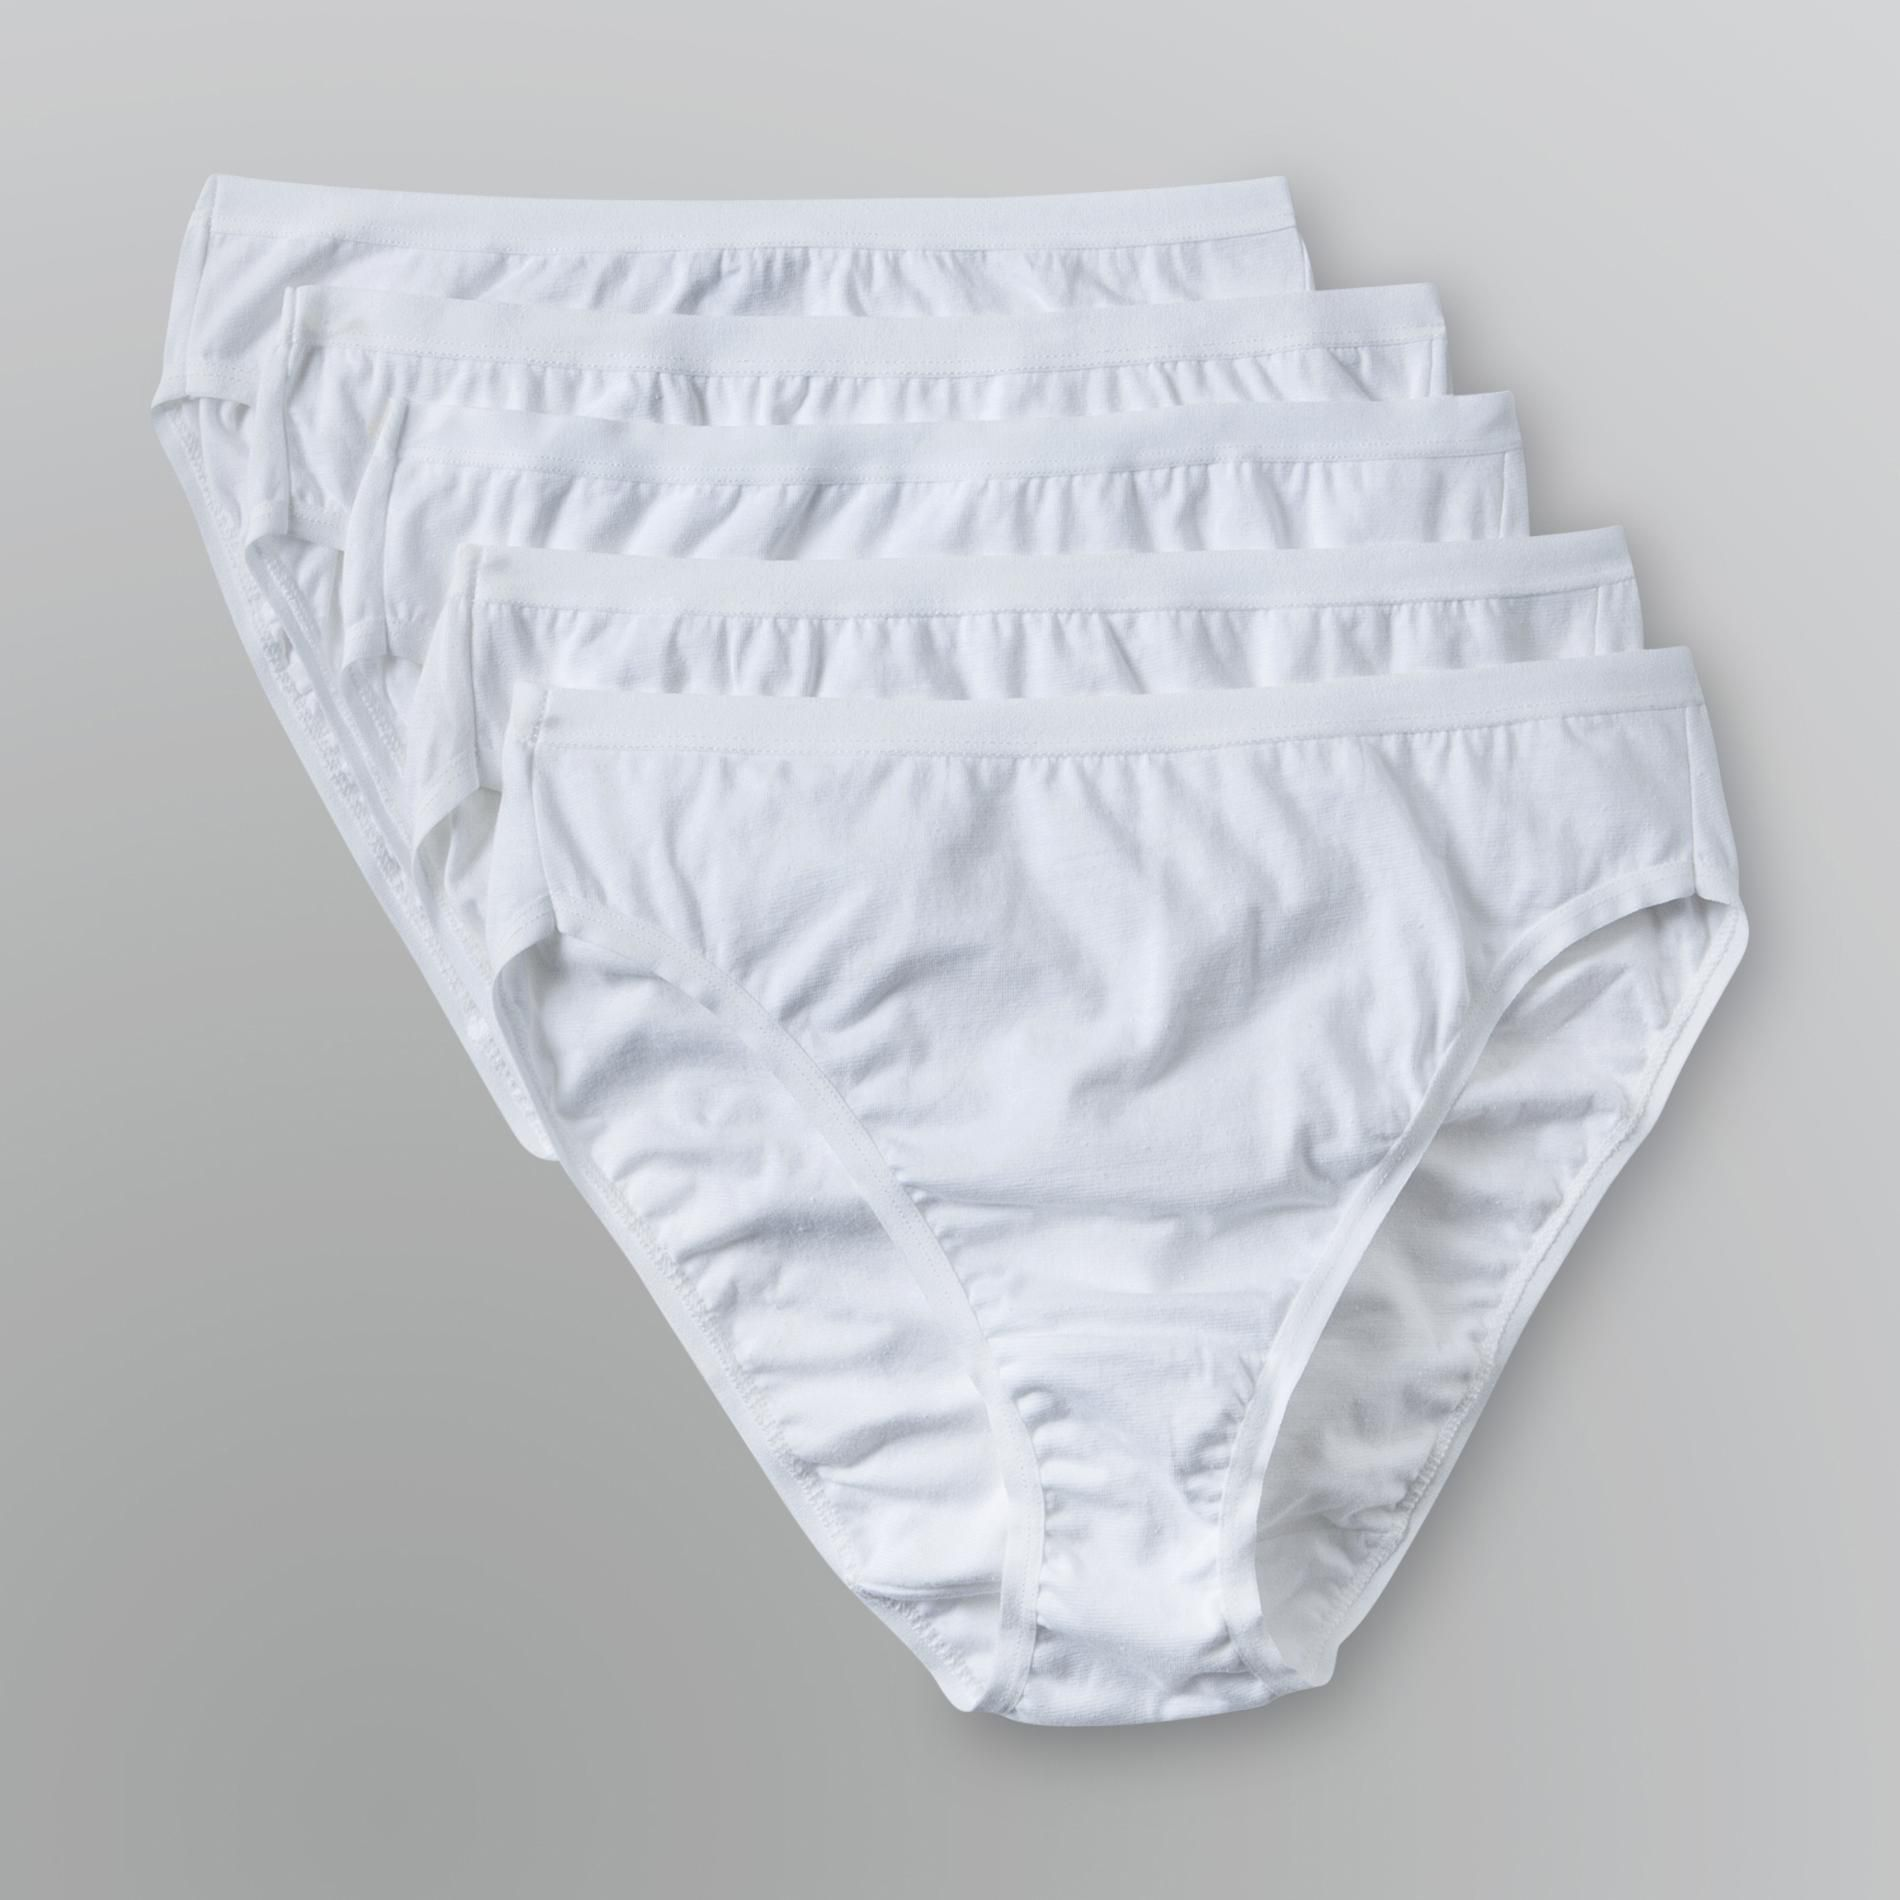 Women's True Comfort Cotton Hi-Cut Panty - 5-Pack